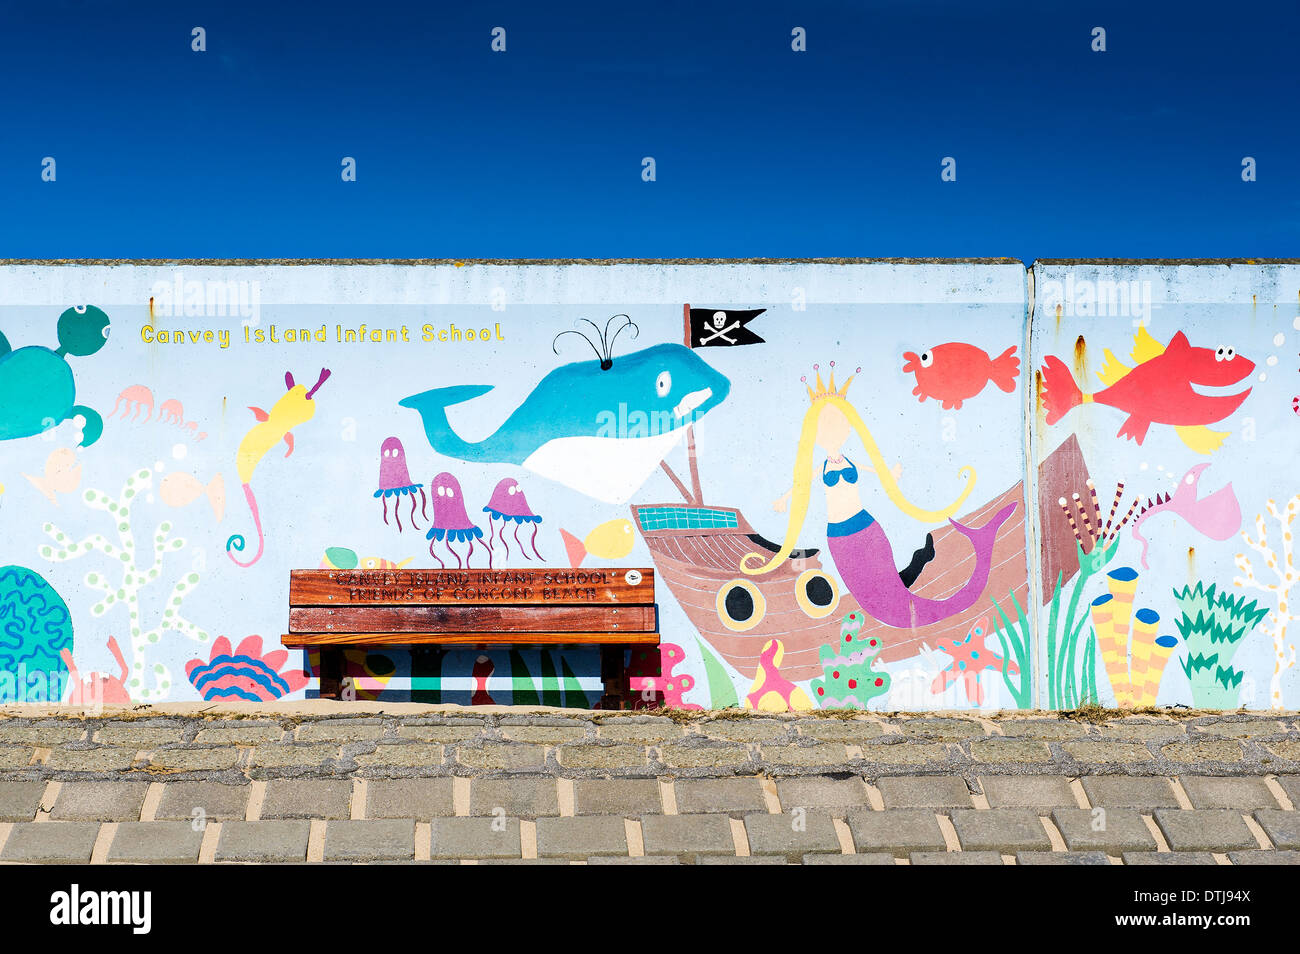 Canvey Island - A colourful mural painted on the sea wall at Canvey Island in Essex. The mural is painted by Canvey Island Infants School. - Stock Image